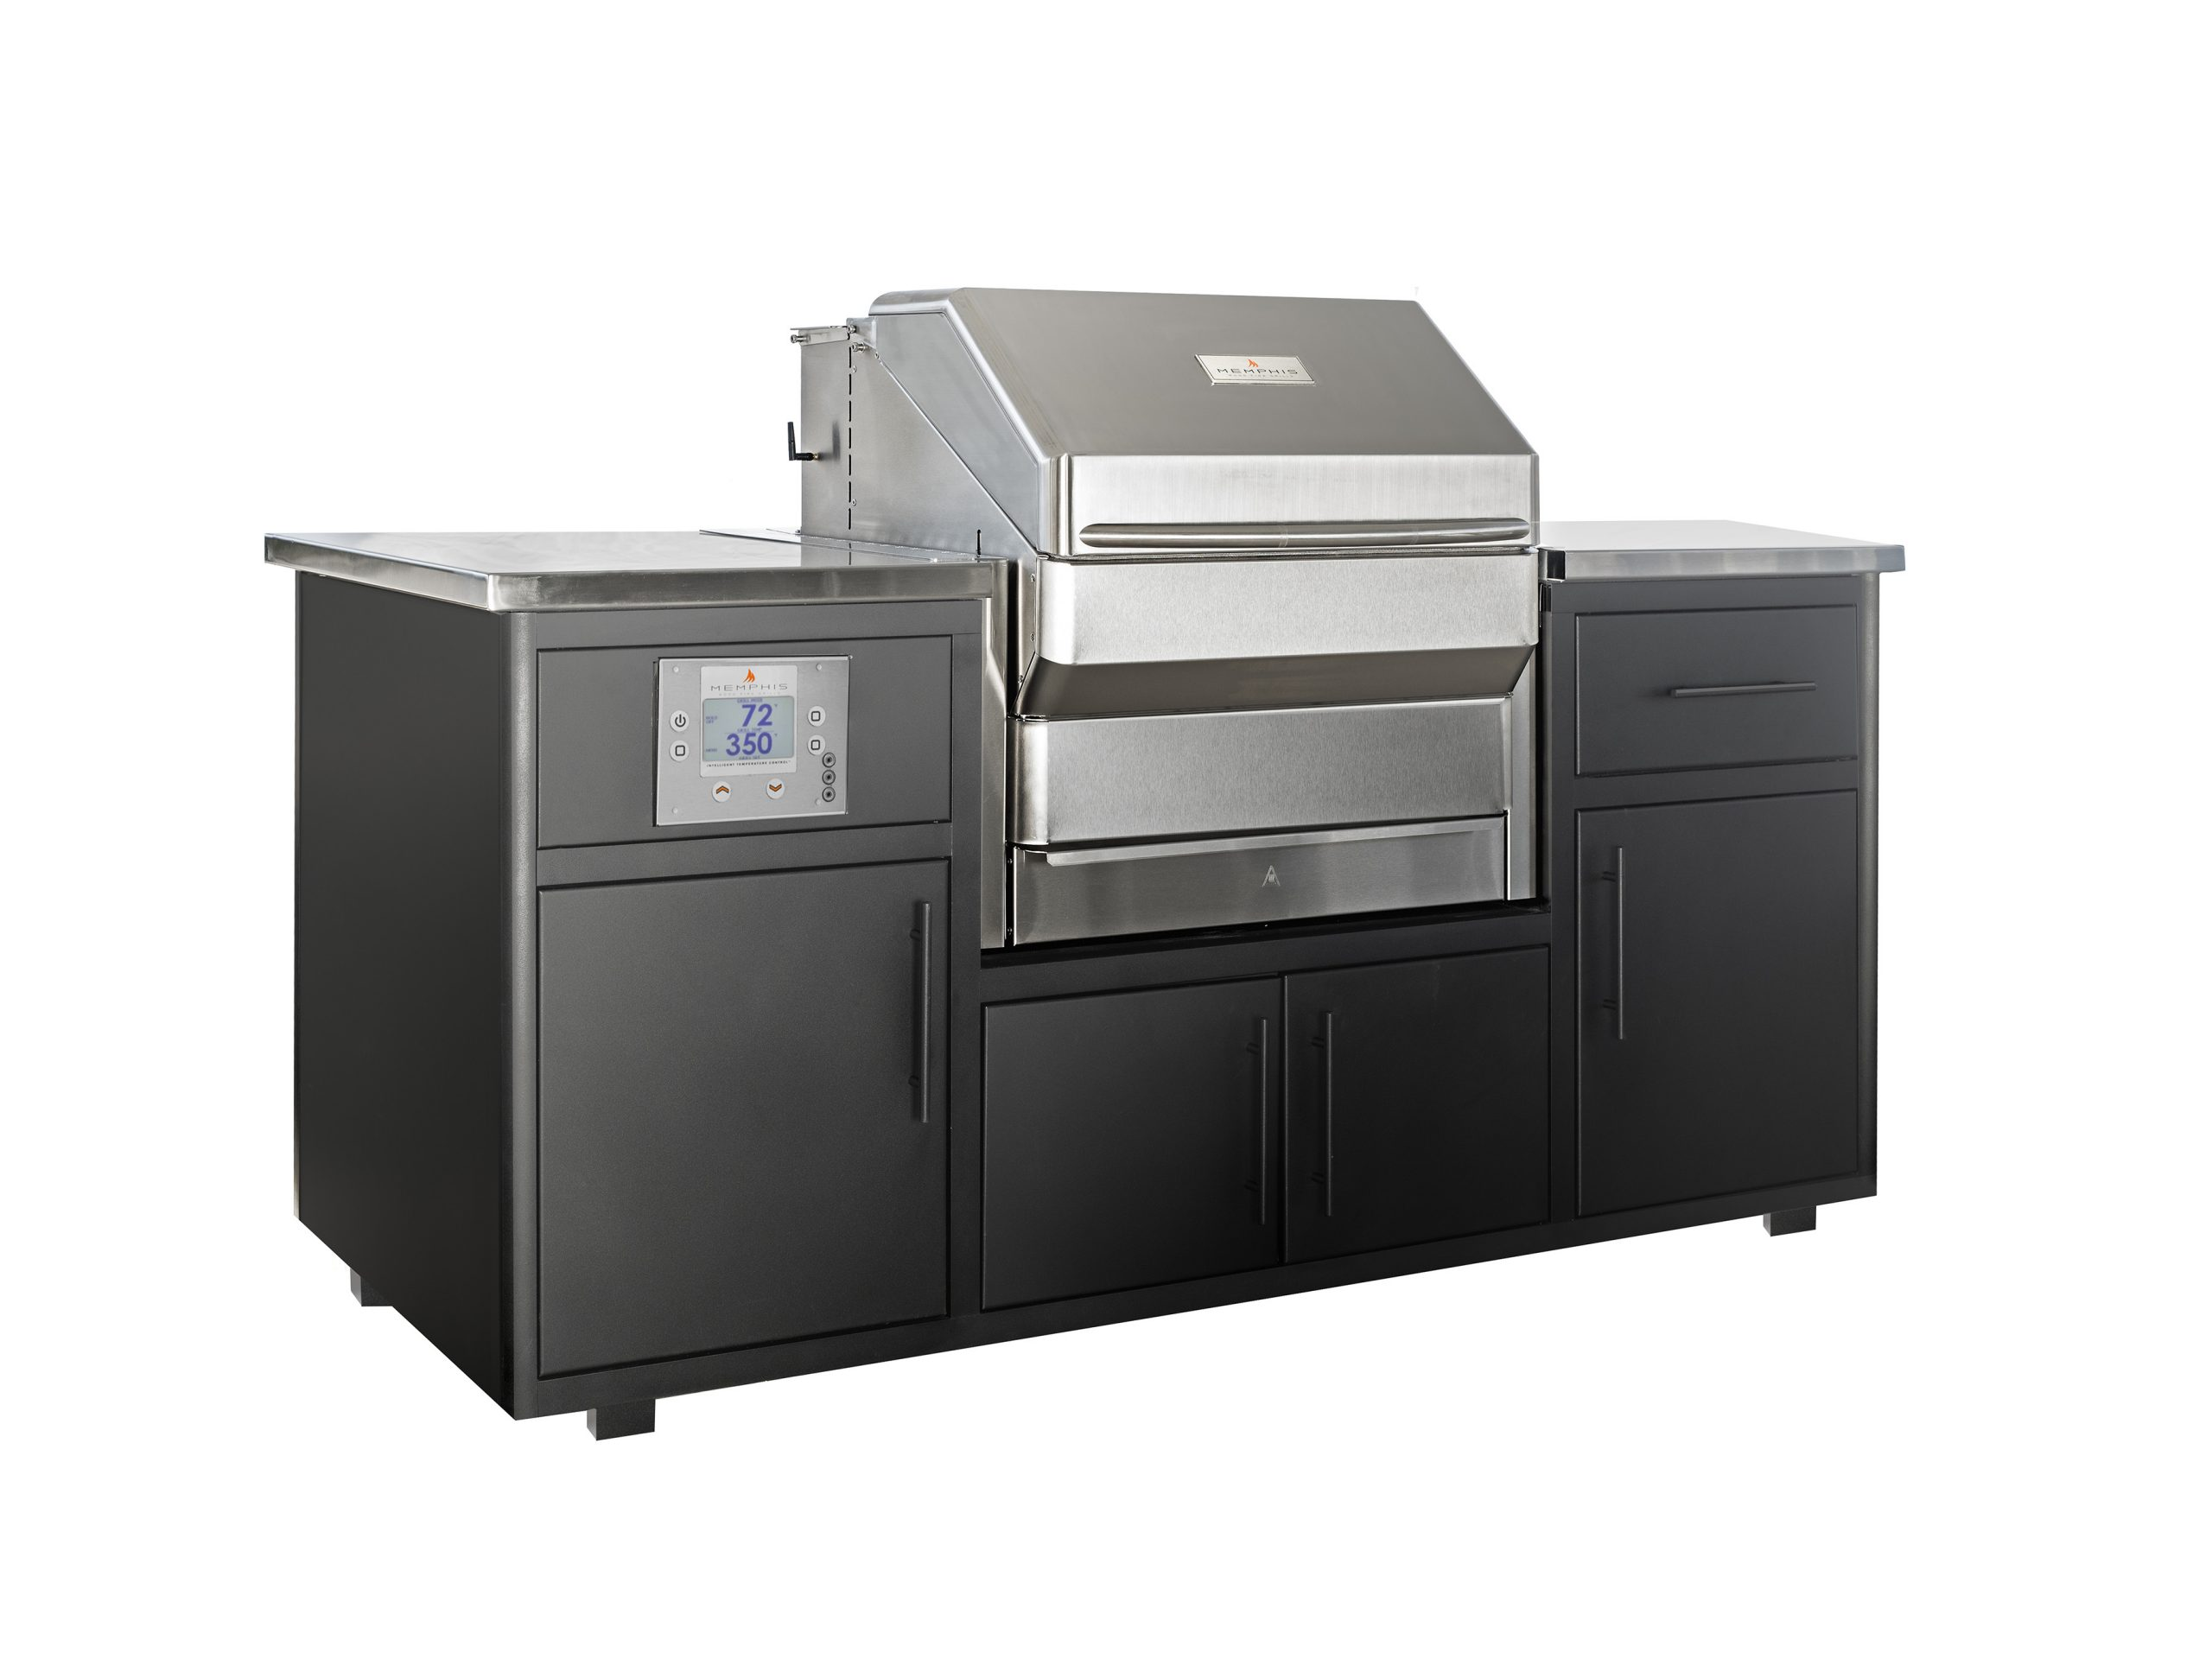 altantic spas Outdoor Kitchen with Pro Grill Built In